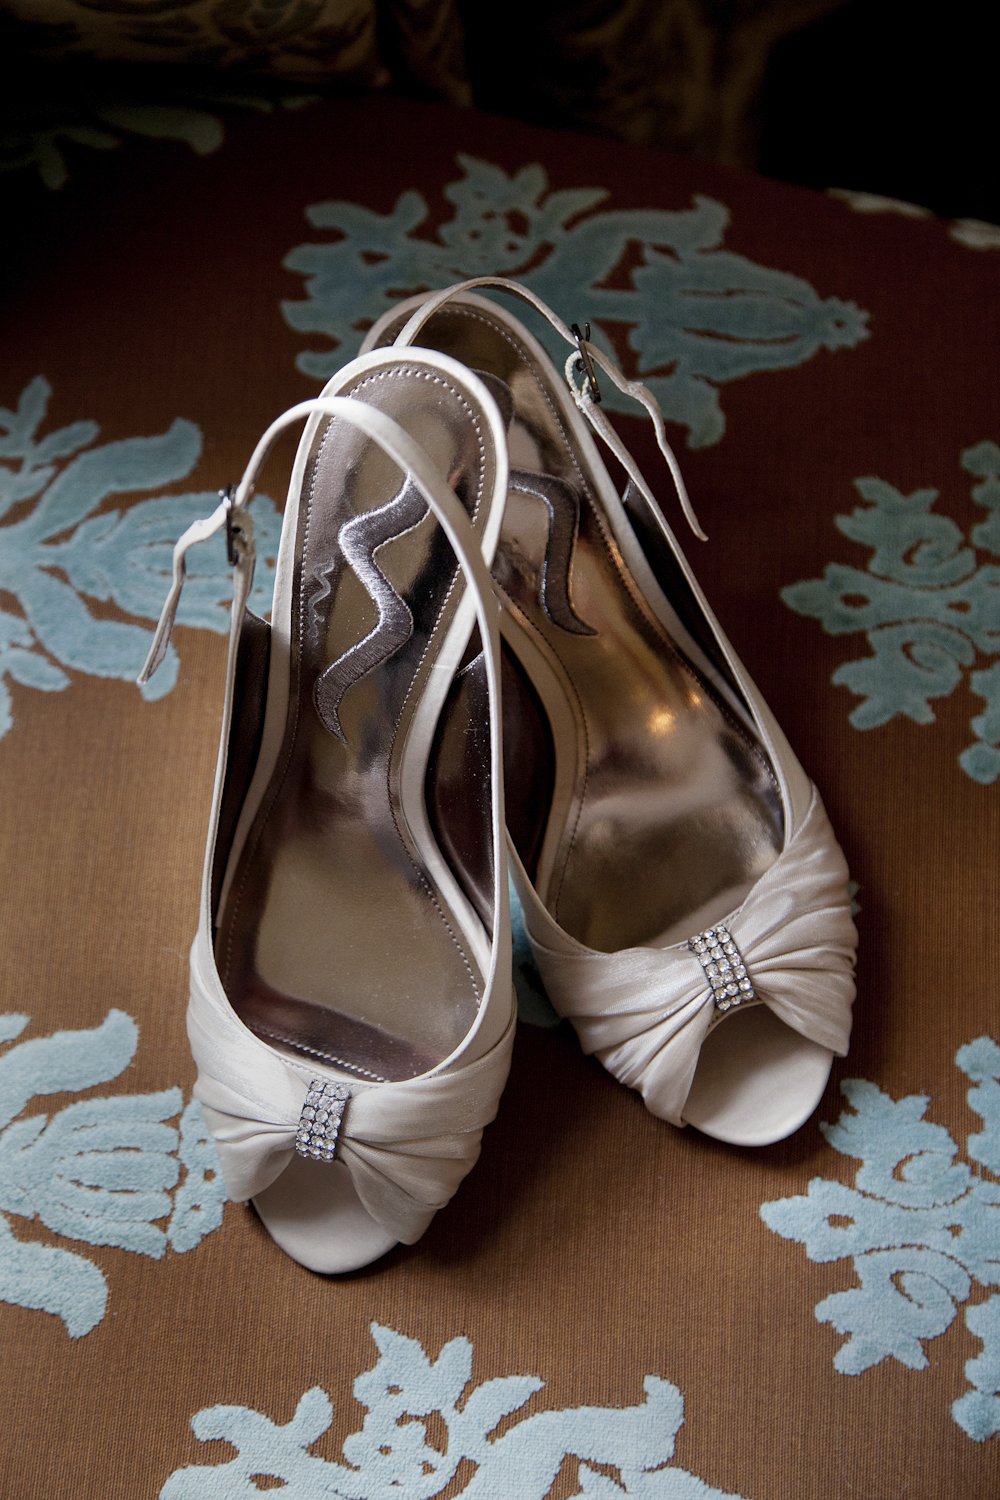 Indianapolis-Indiana-Wedding-Photographer-Crowes-Eye-Photography-Bridal-shoes.jpg